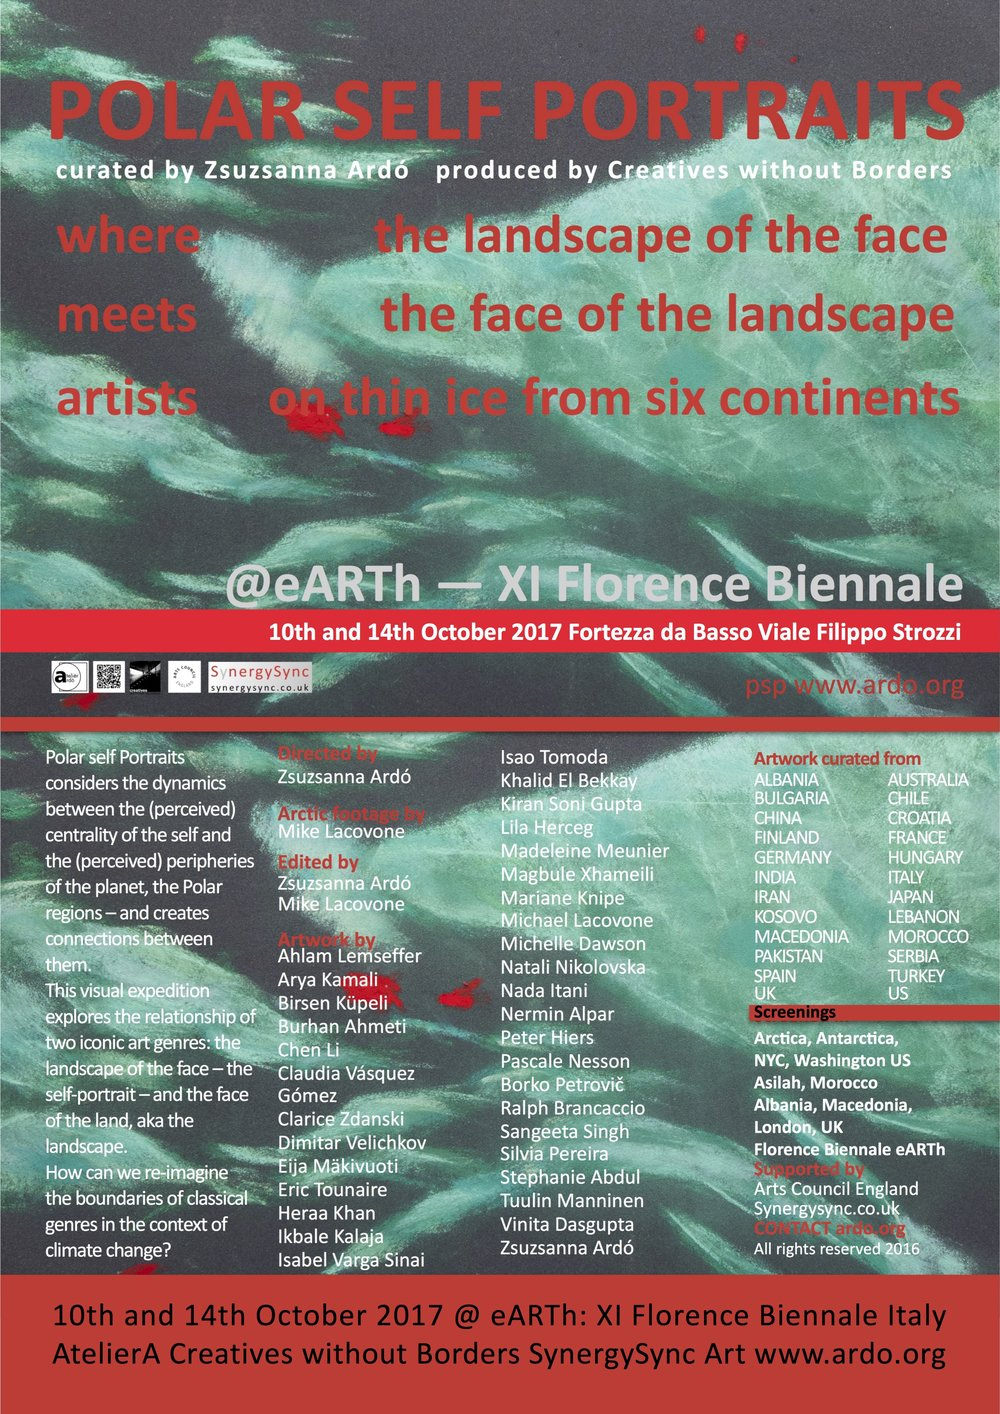 17 IT FLor Biennale eARTh poster wlist.jpg